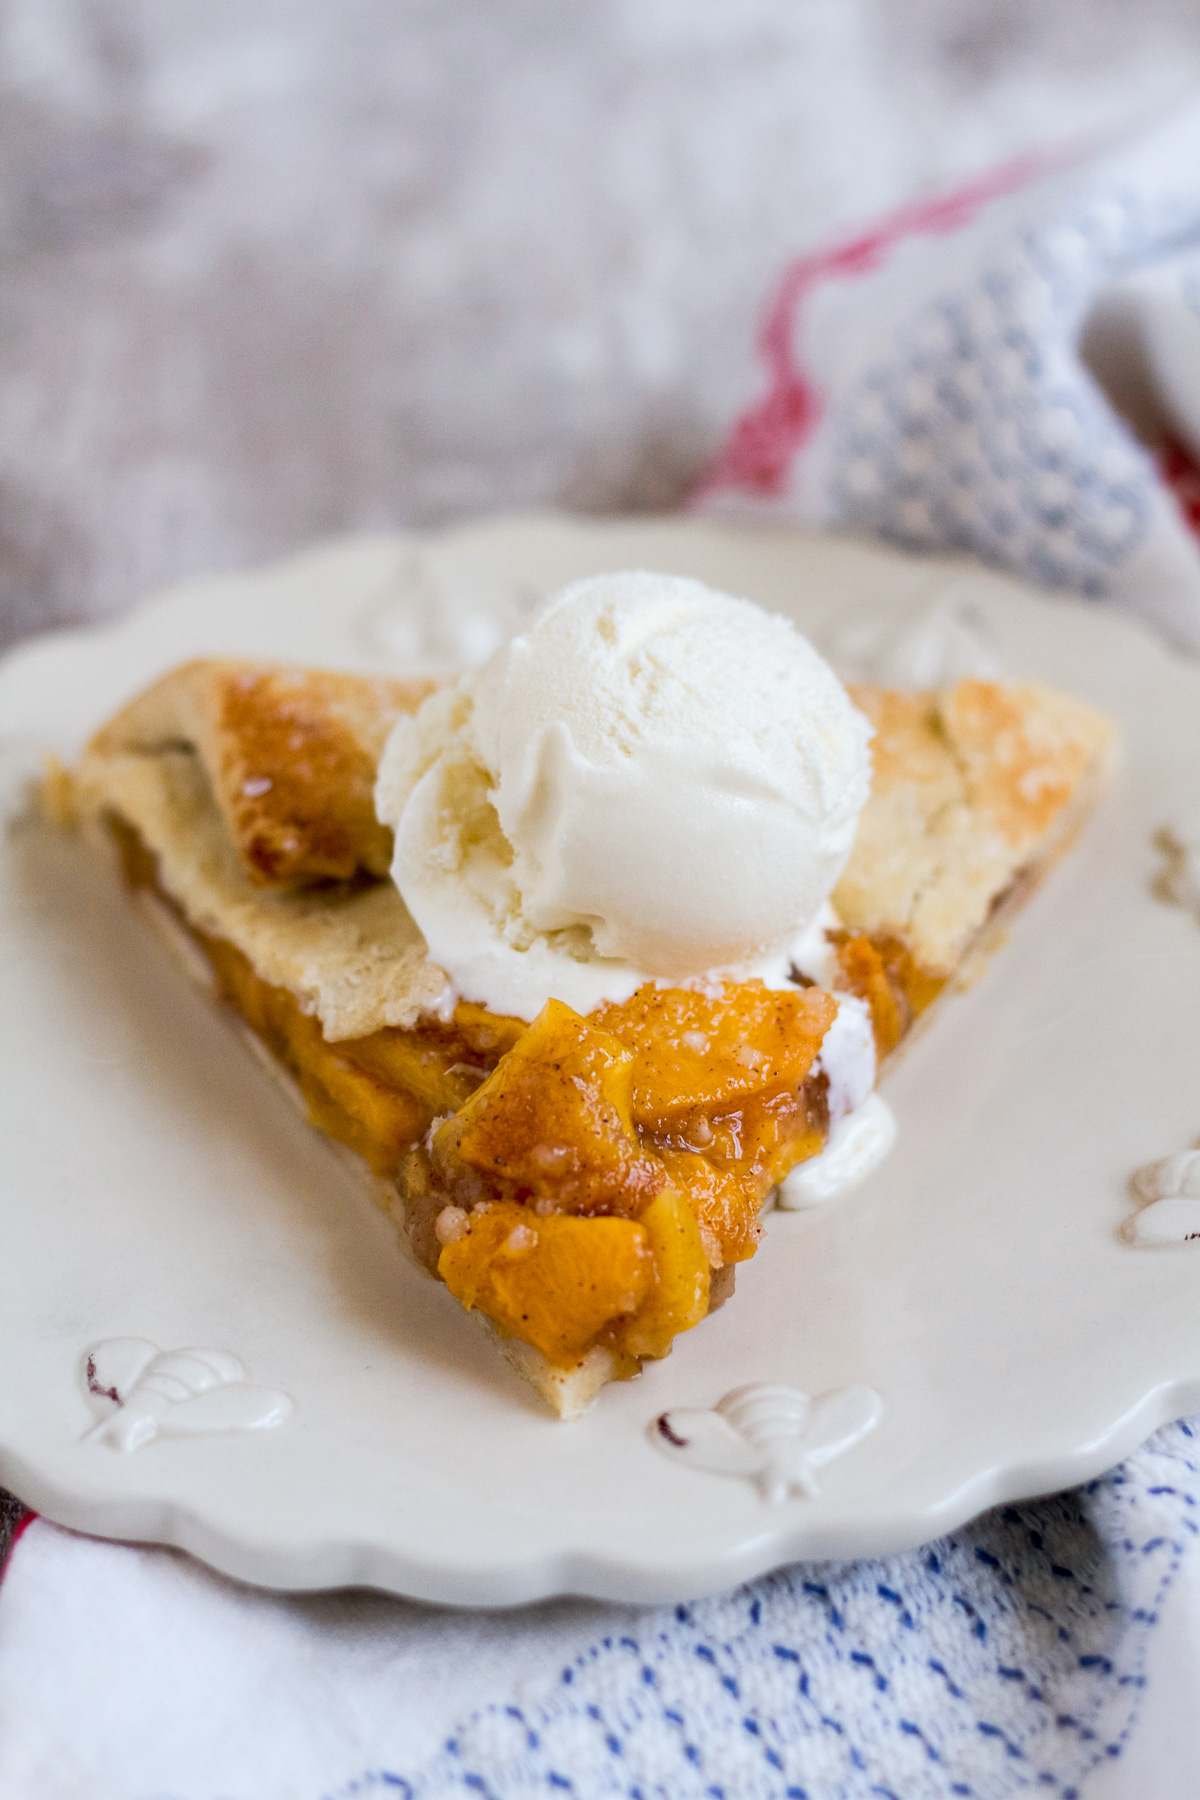 Make this sweetly spiced fresh peach galette, and enjoy one last bite of summer!